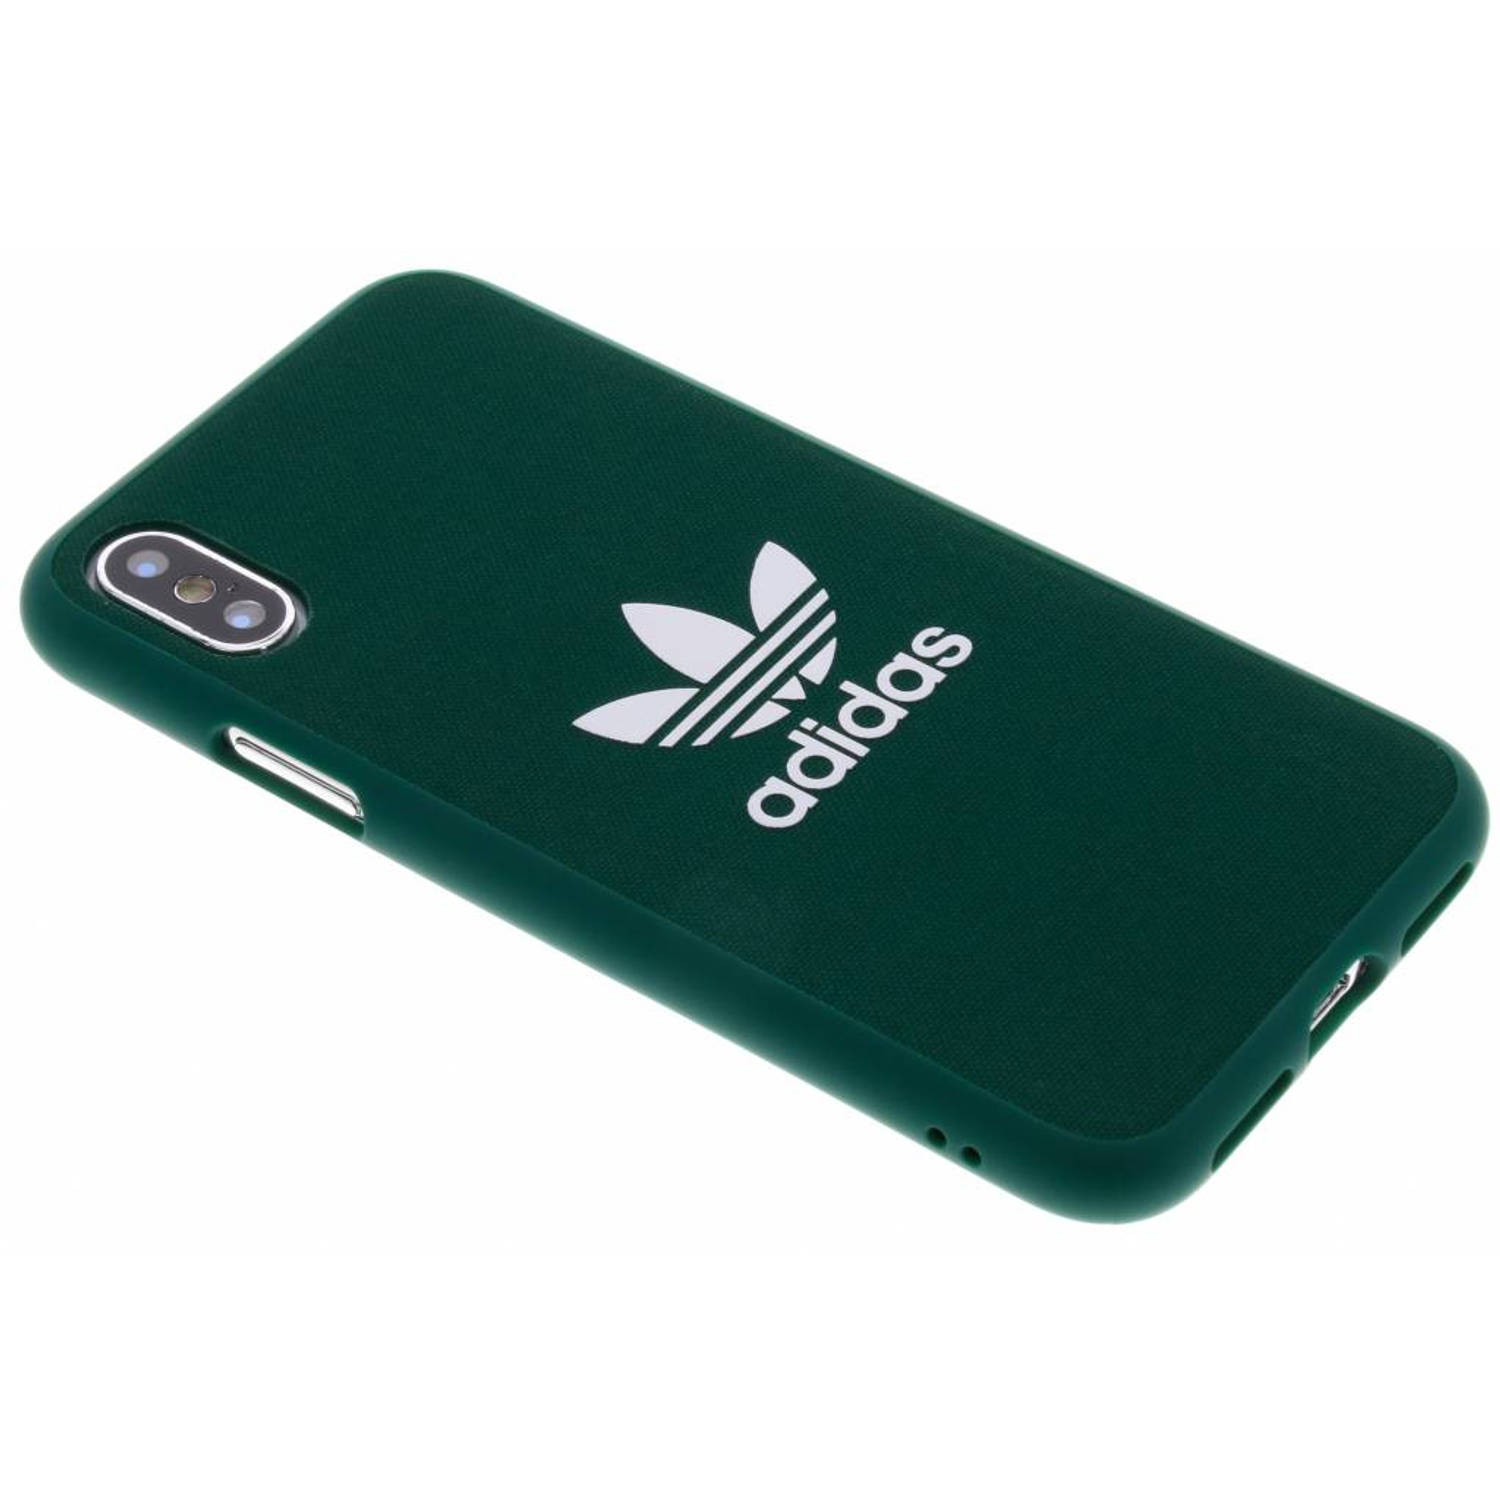 Groene Adicolor Moulded Case voor de iPhone X